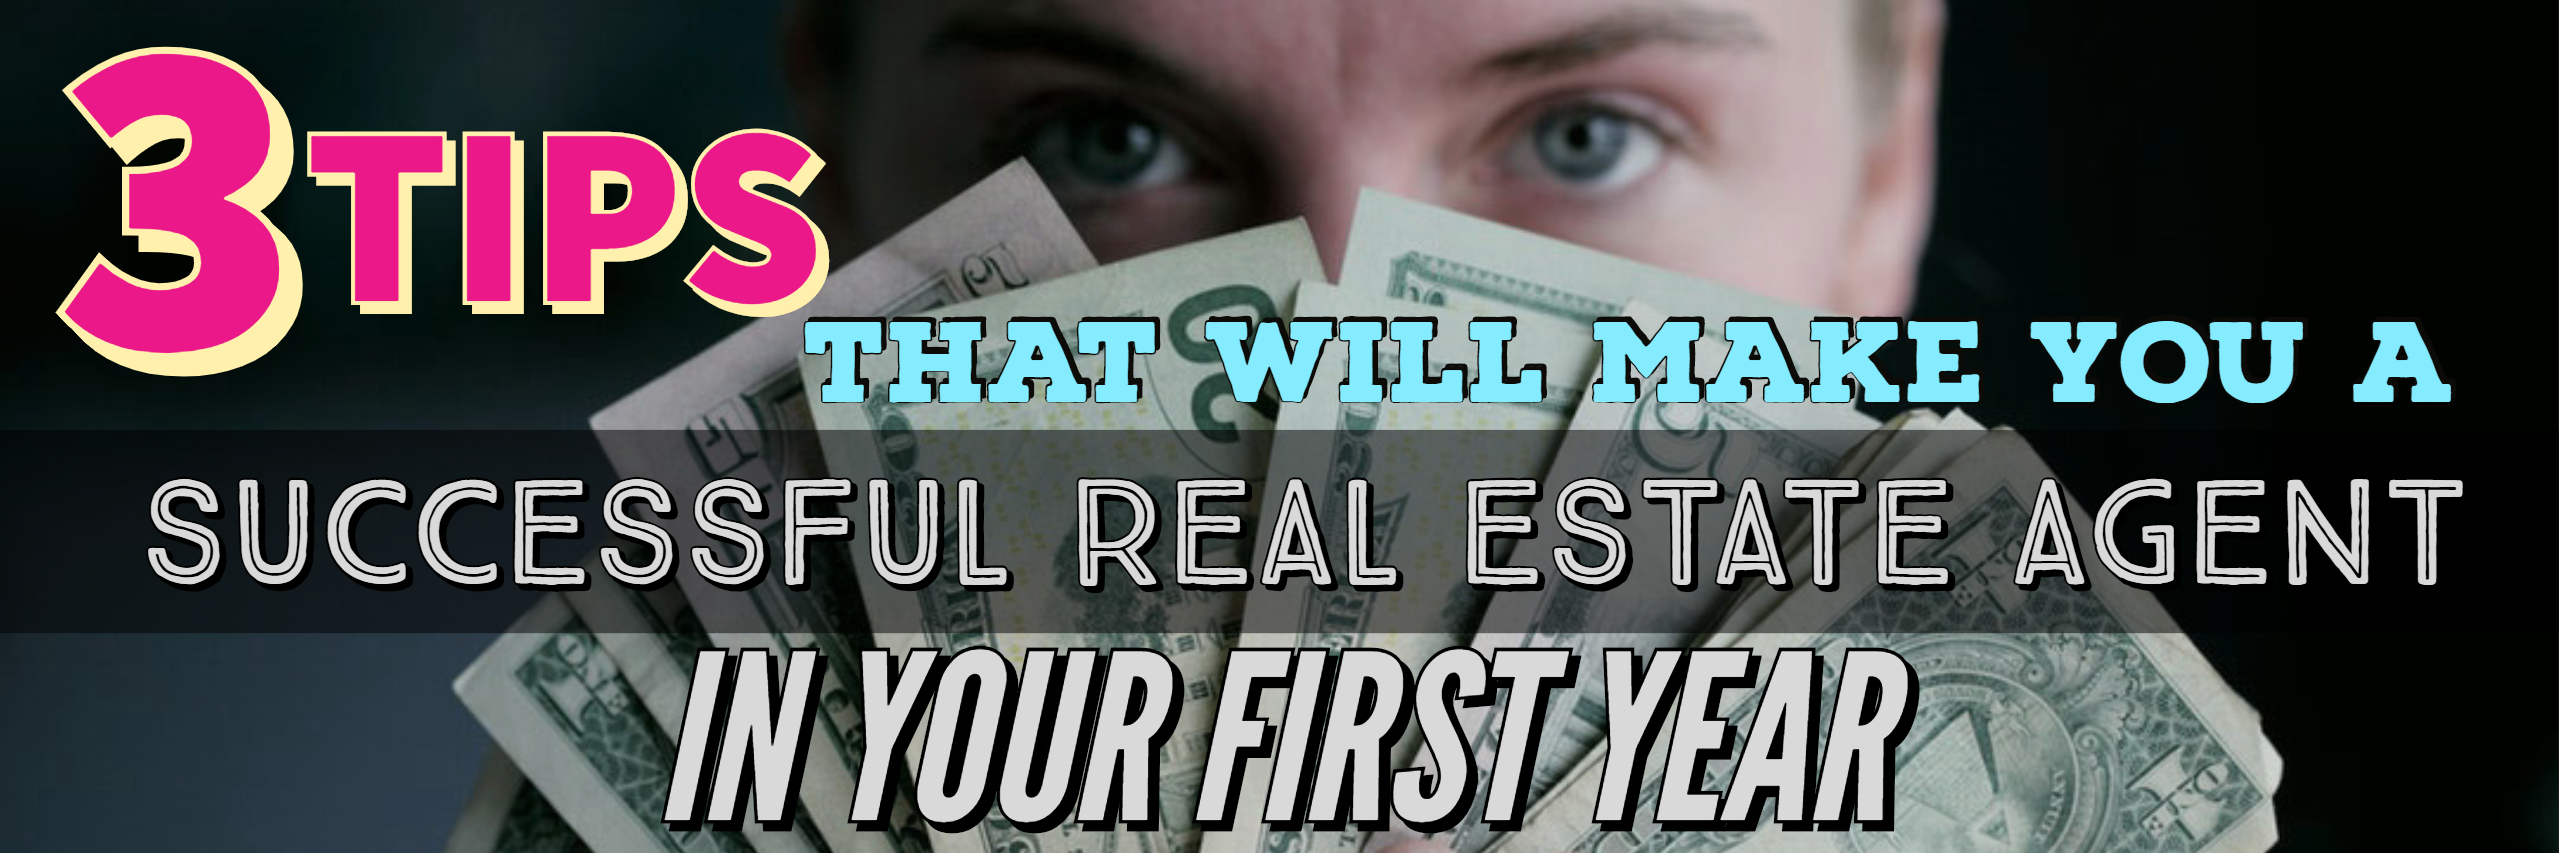 3 Tips That Will Make You A Successful Real Estate Agent in Your First Year (Banner)